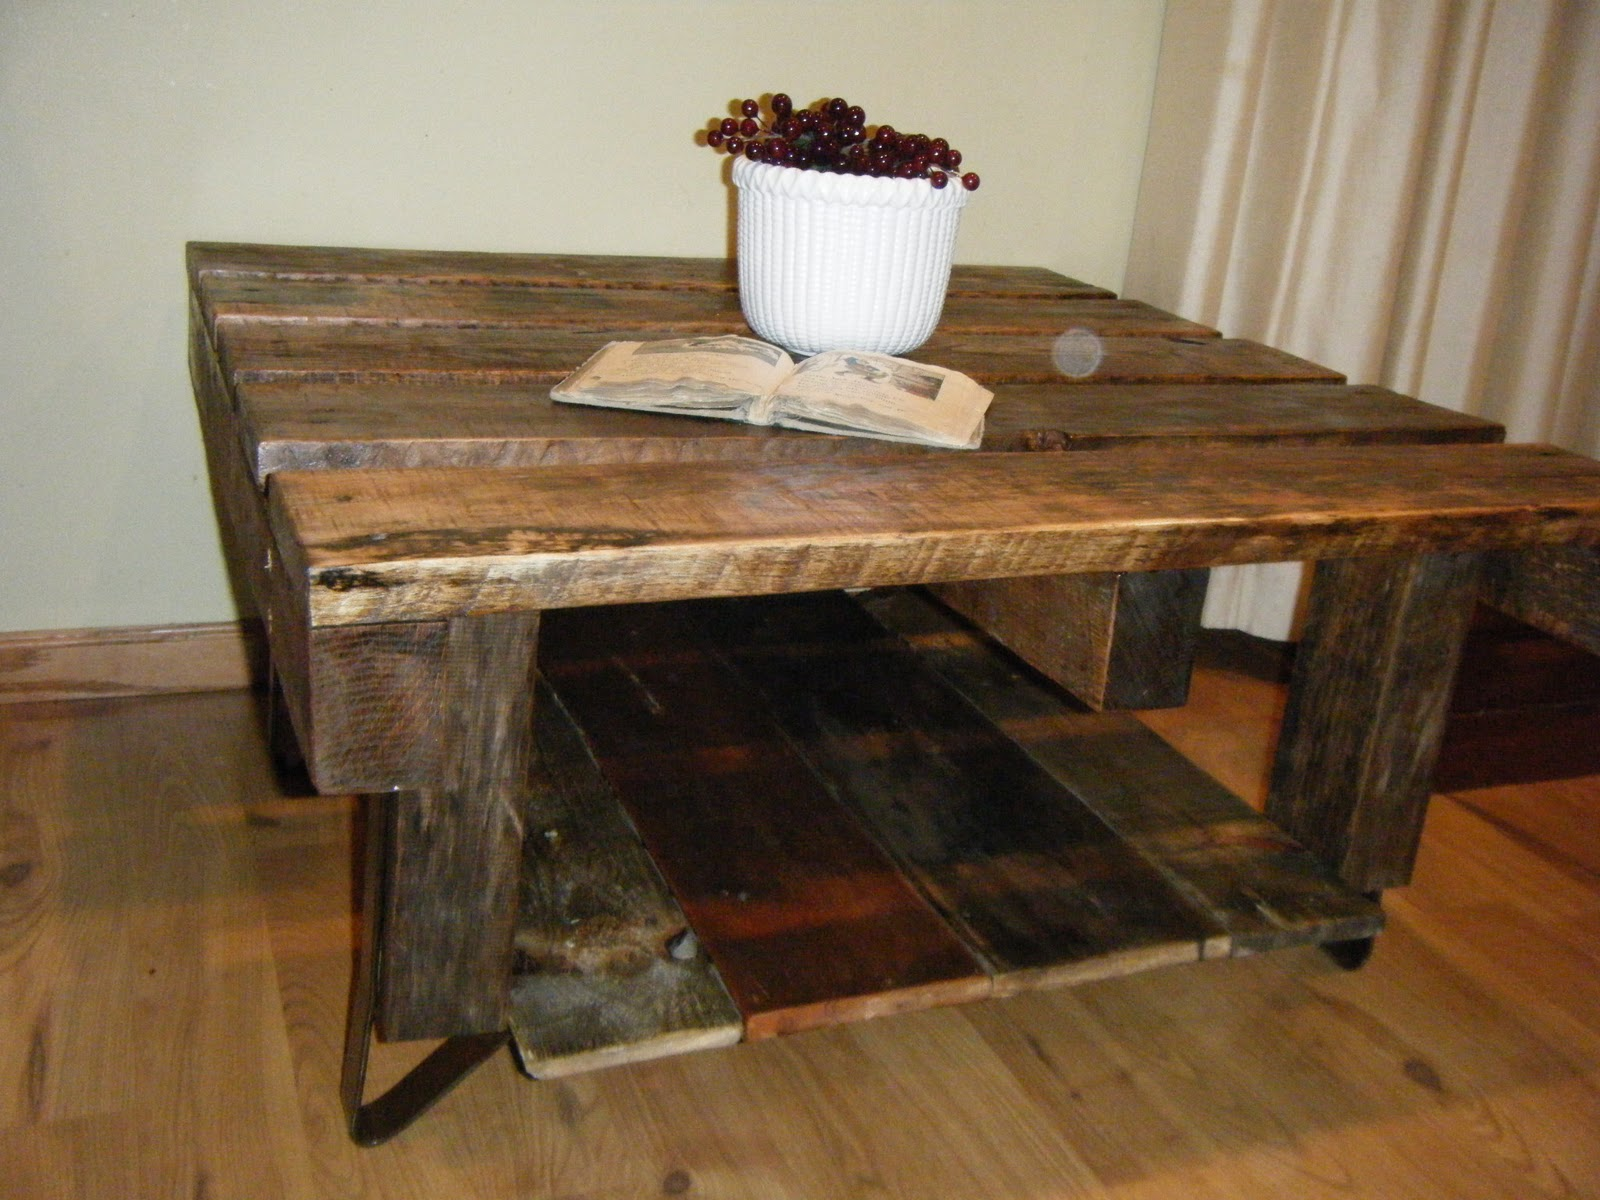 Tattered Lantern Rustic Pallet Coffee Table $160 00 SOLD